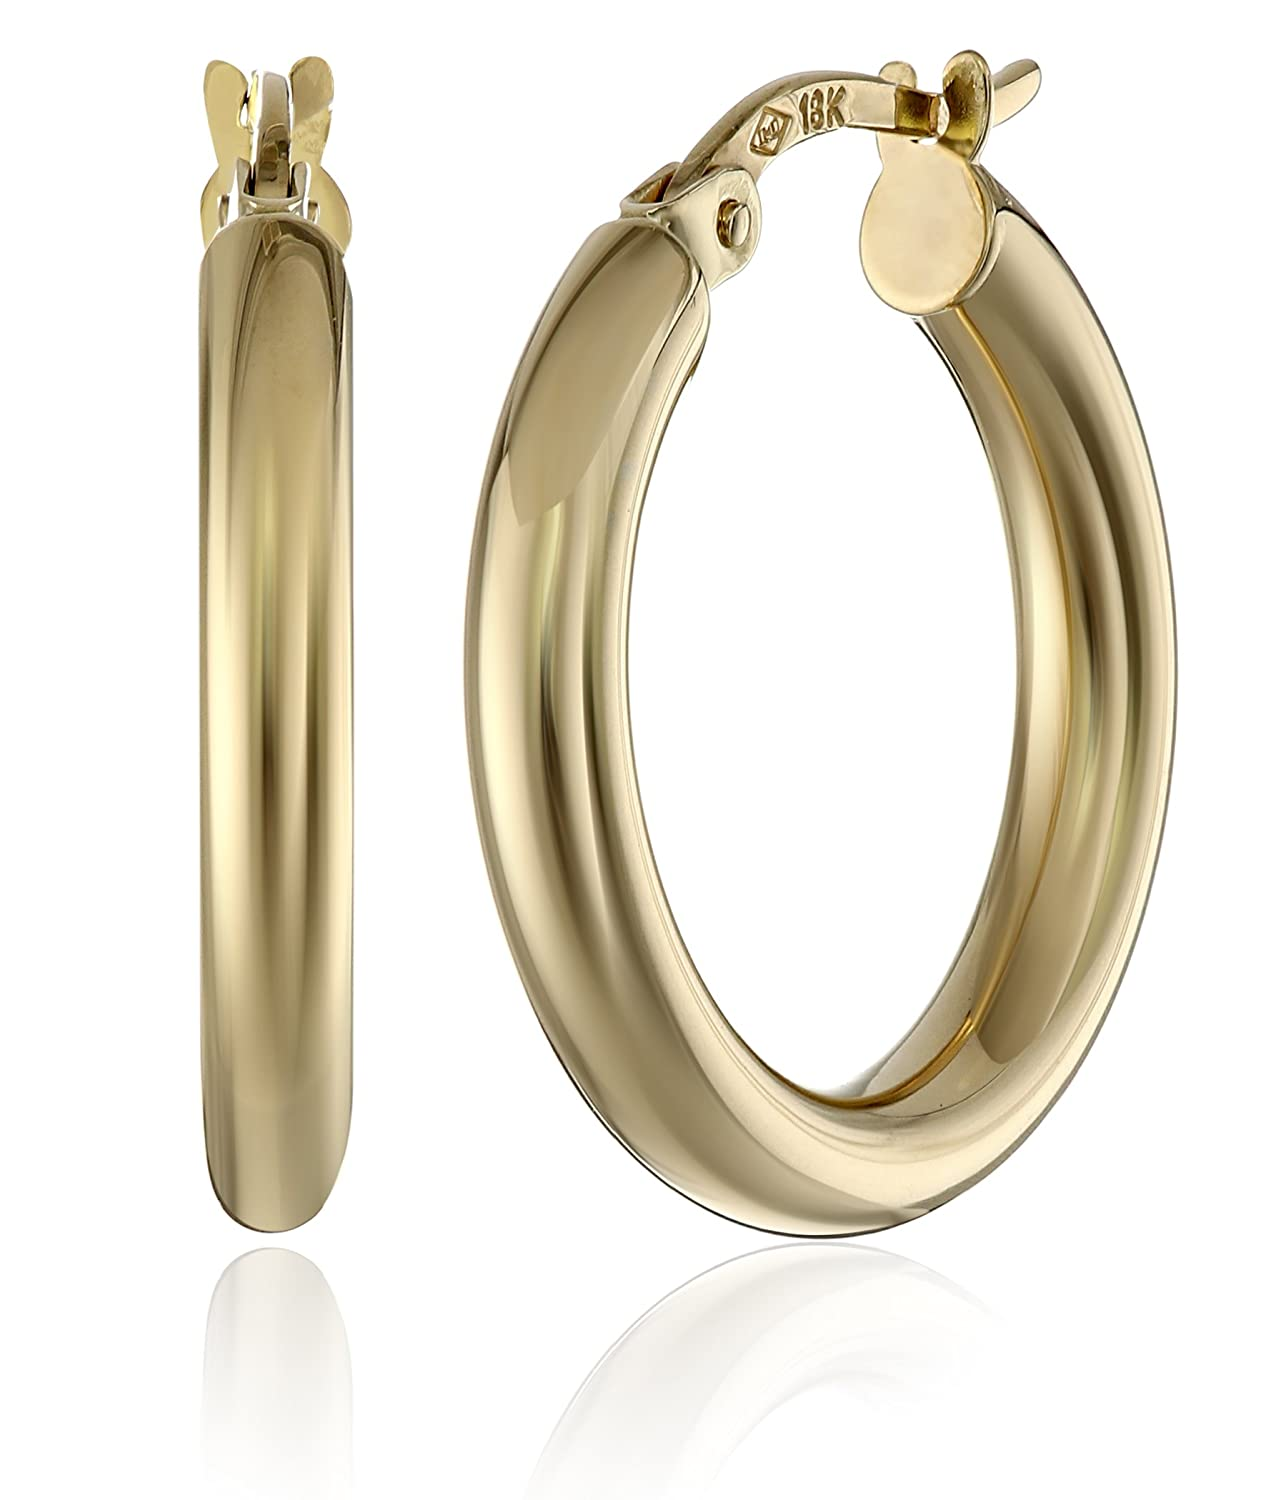 jewellery earrings filled hoops gemstone of hoop products gold k